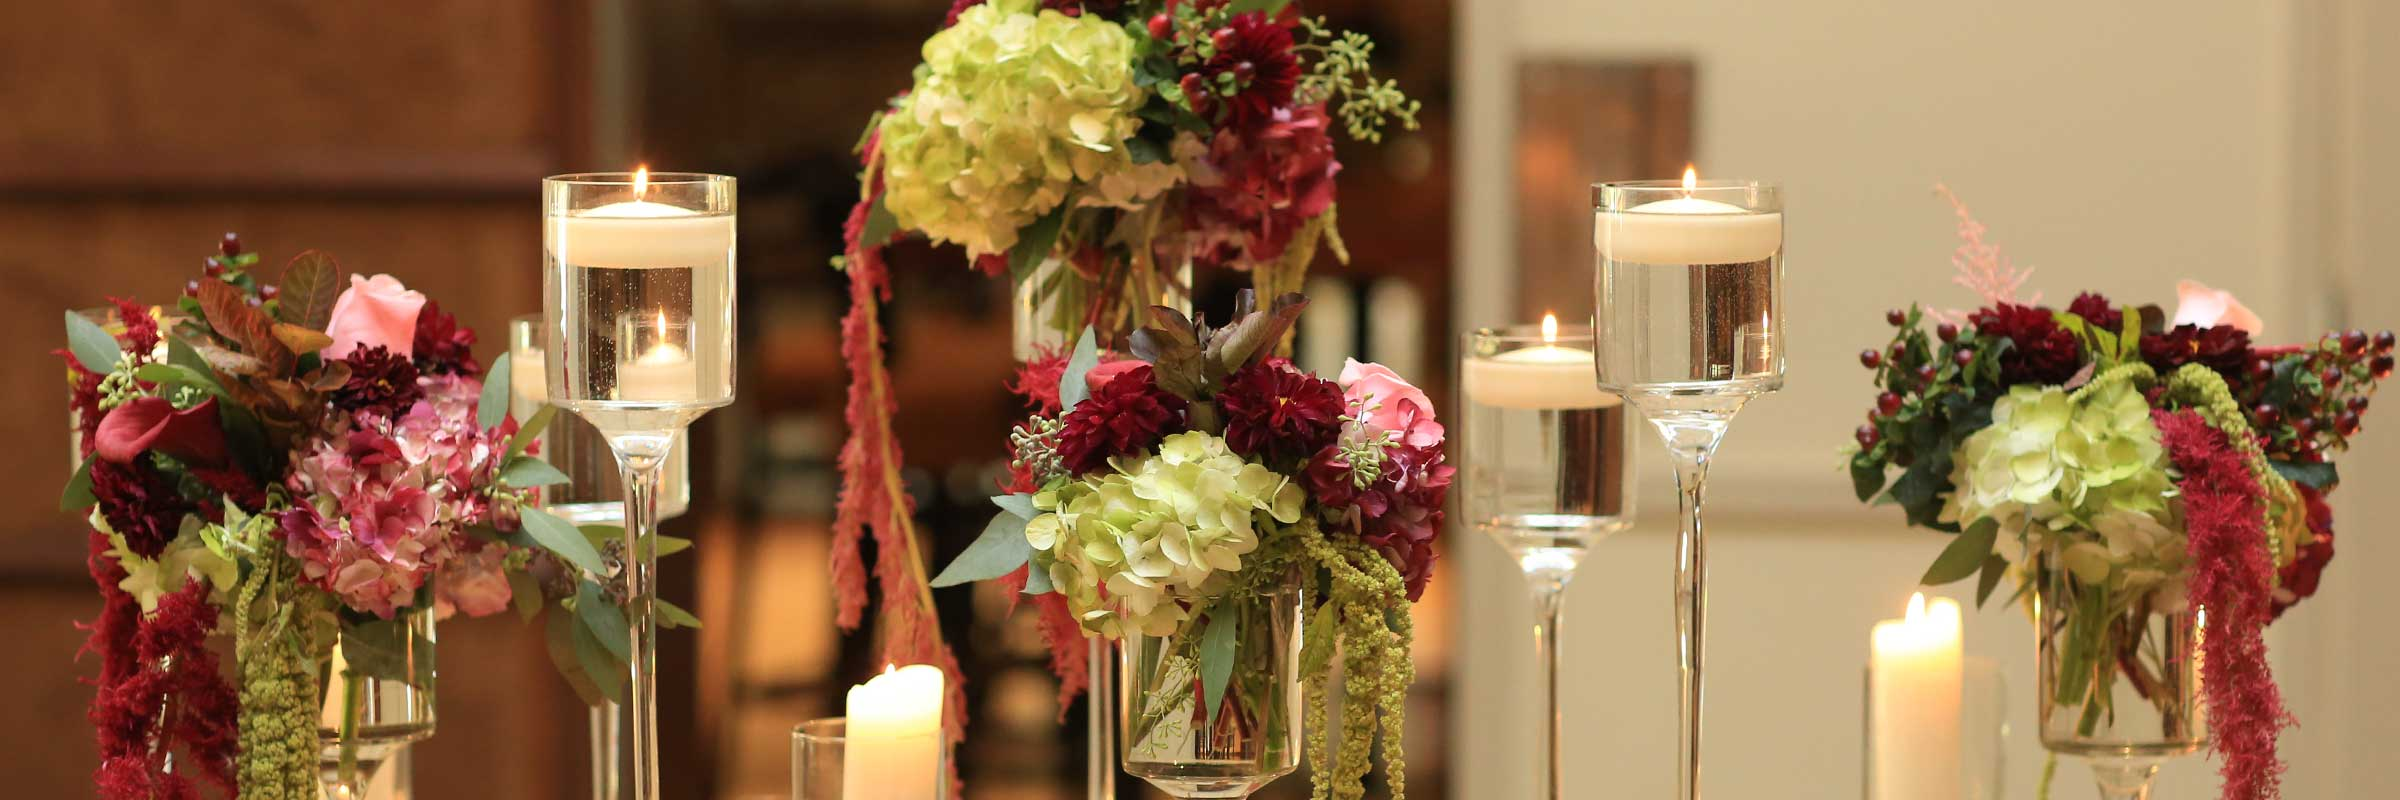 Wedding Fresh Flowers Floral Design